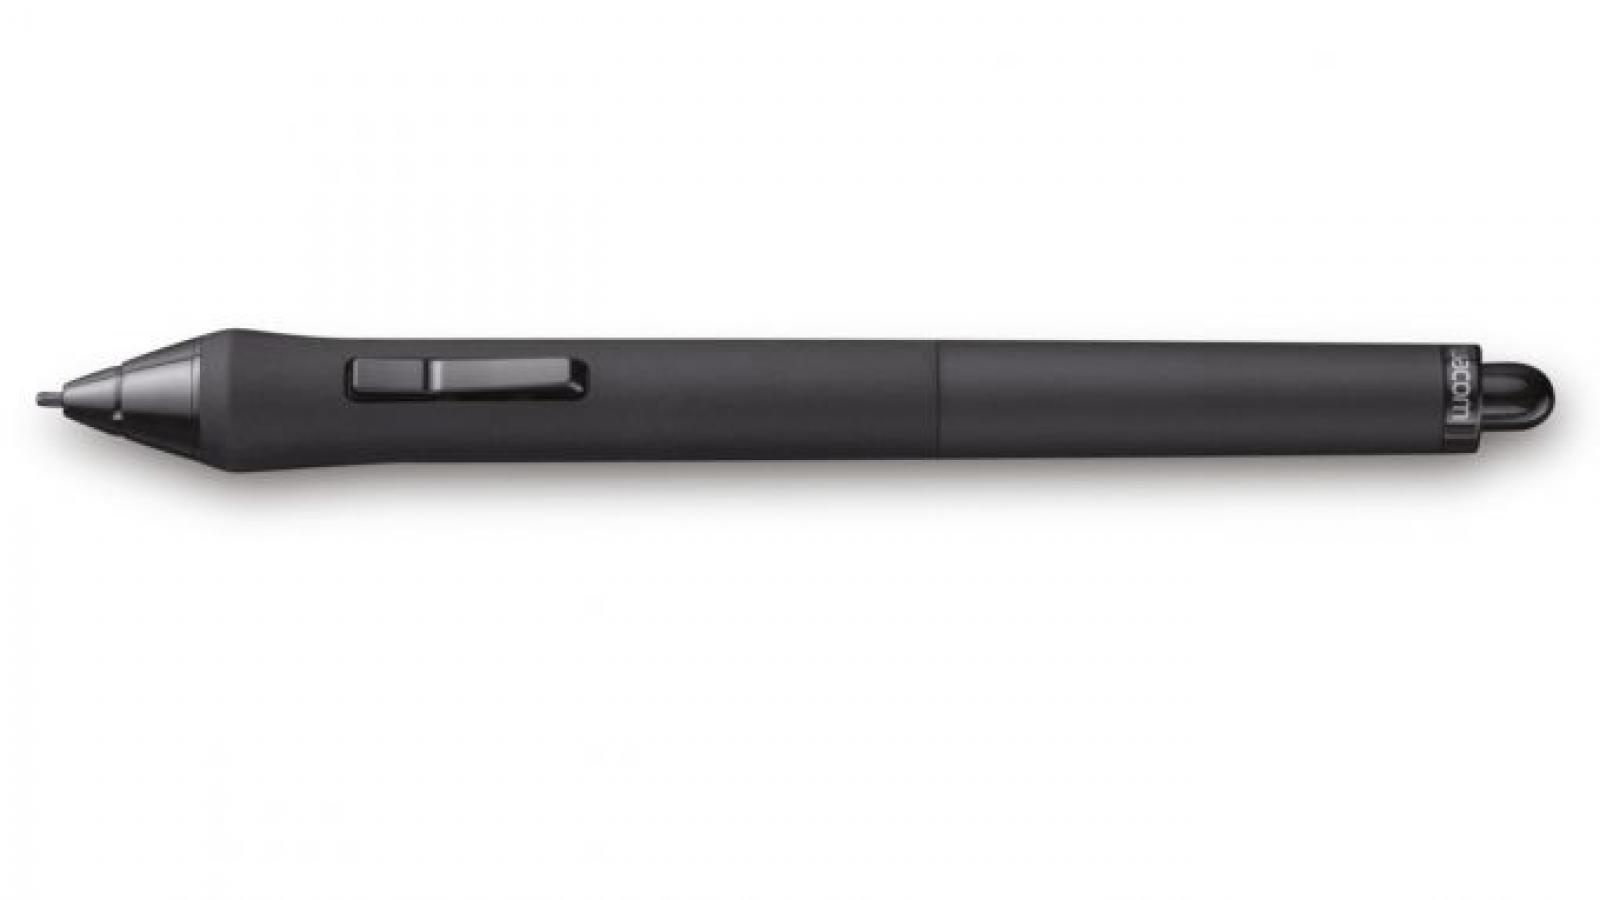 Wacom Grip Pen & Where to Purchase?